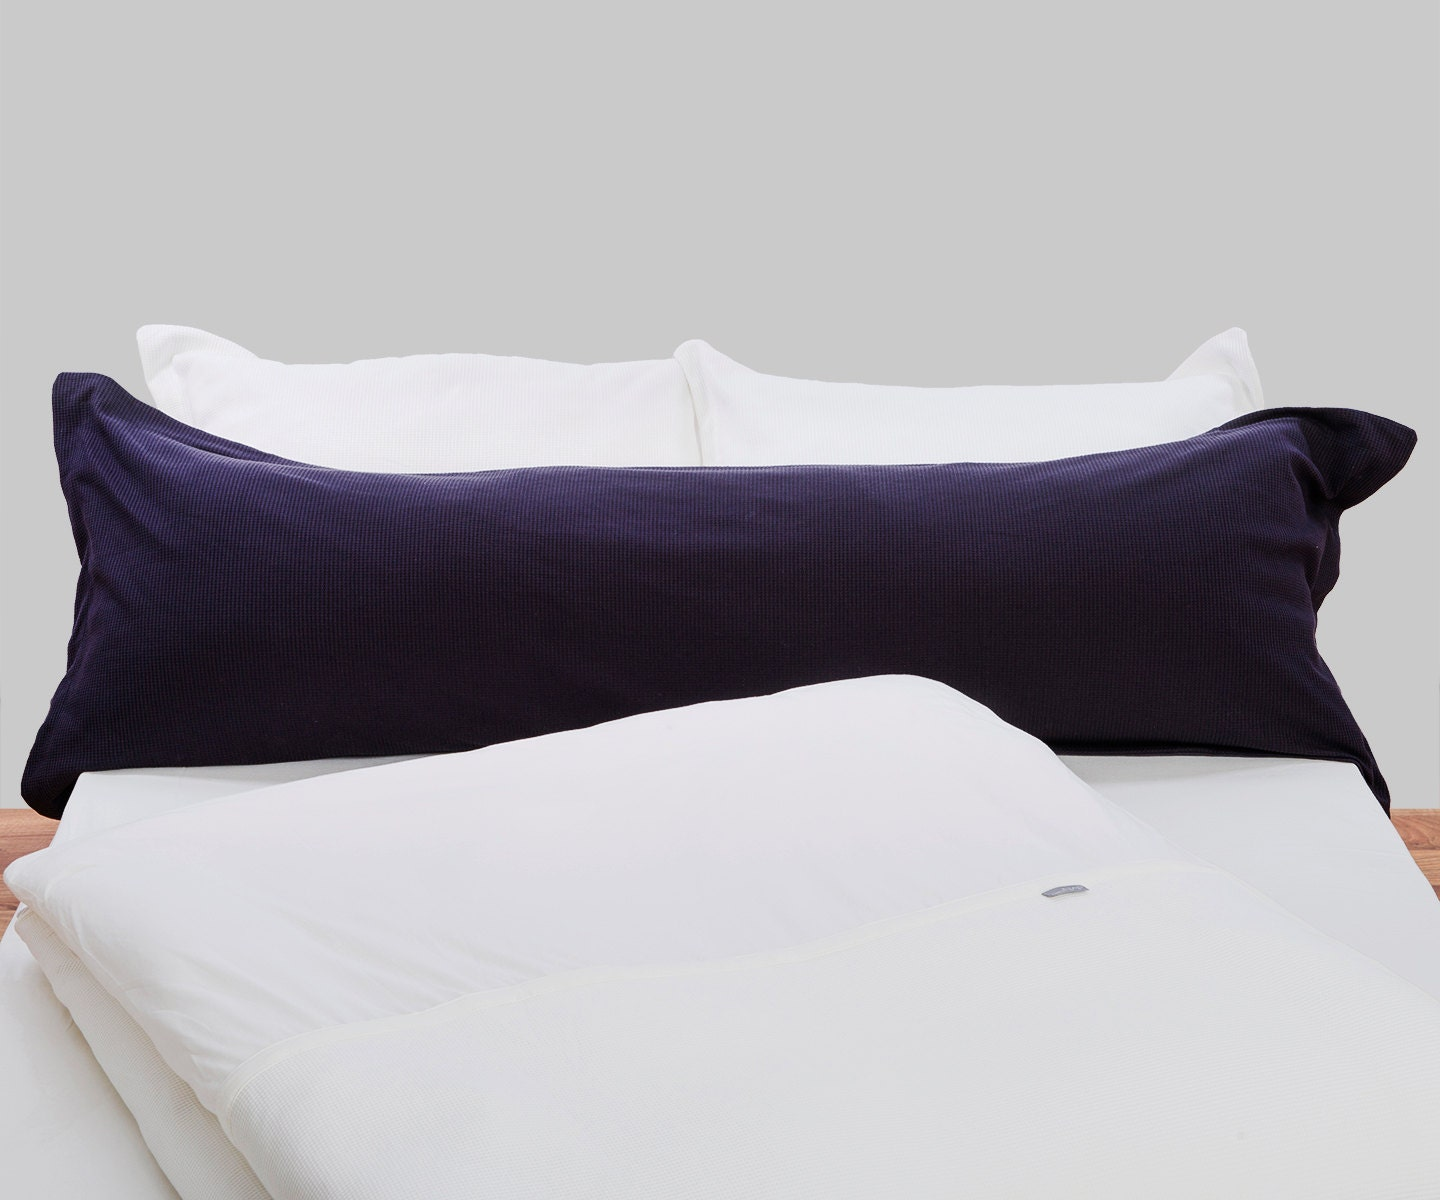 Body Pillow Case Extra Long Lumber Pillow Cover By